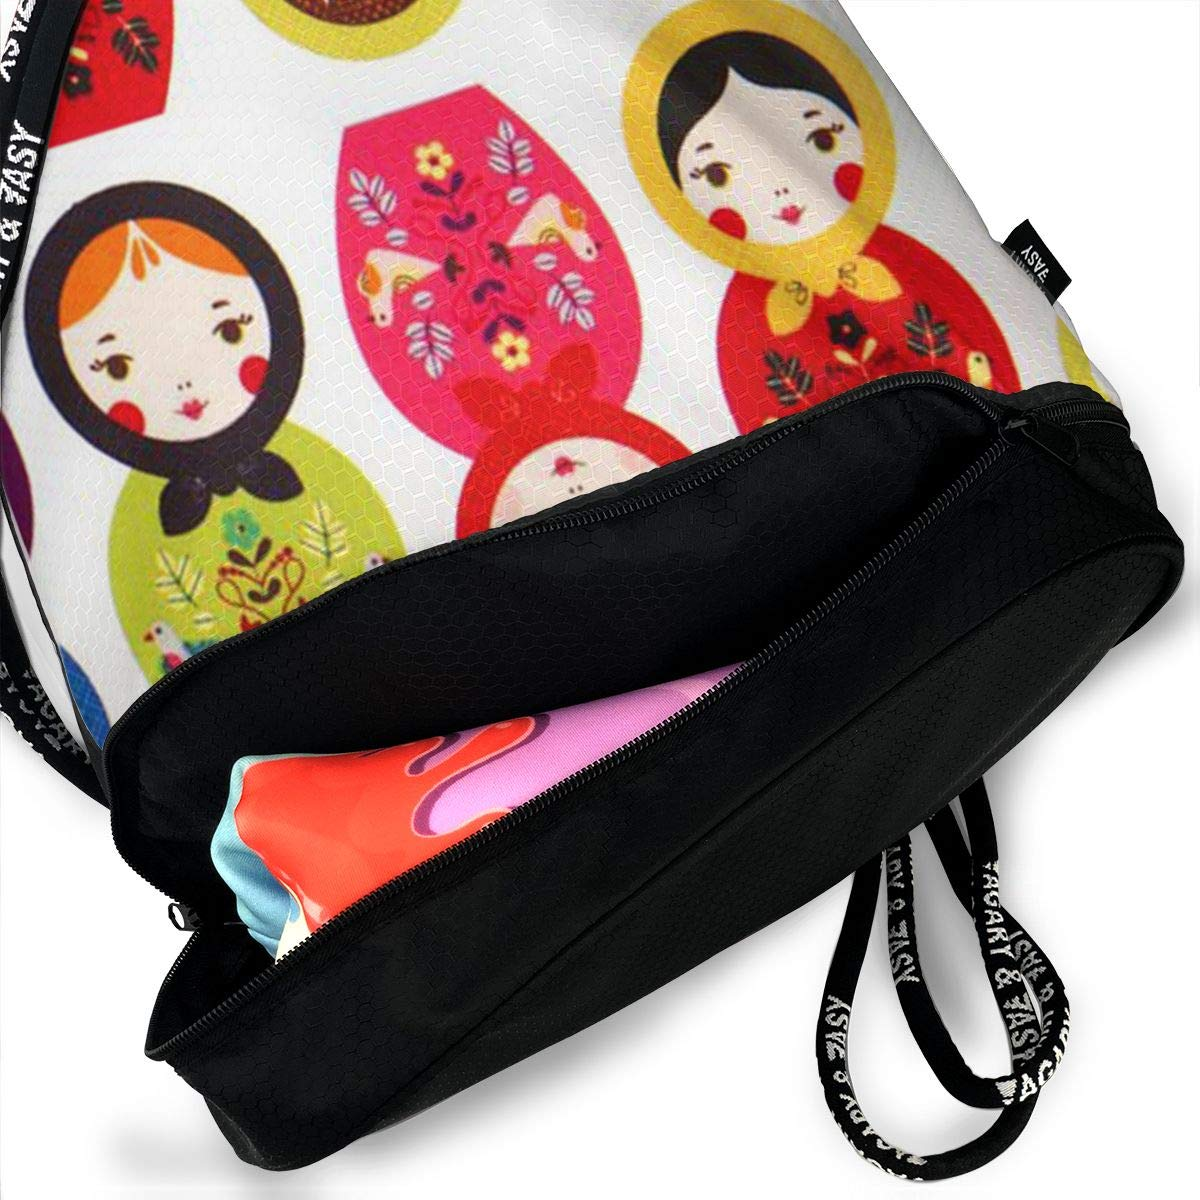 694cd7c0e885 Amazon.com: OLOSARO Drawstring Bag Russian Matryoshka Nesting Dolls ...